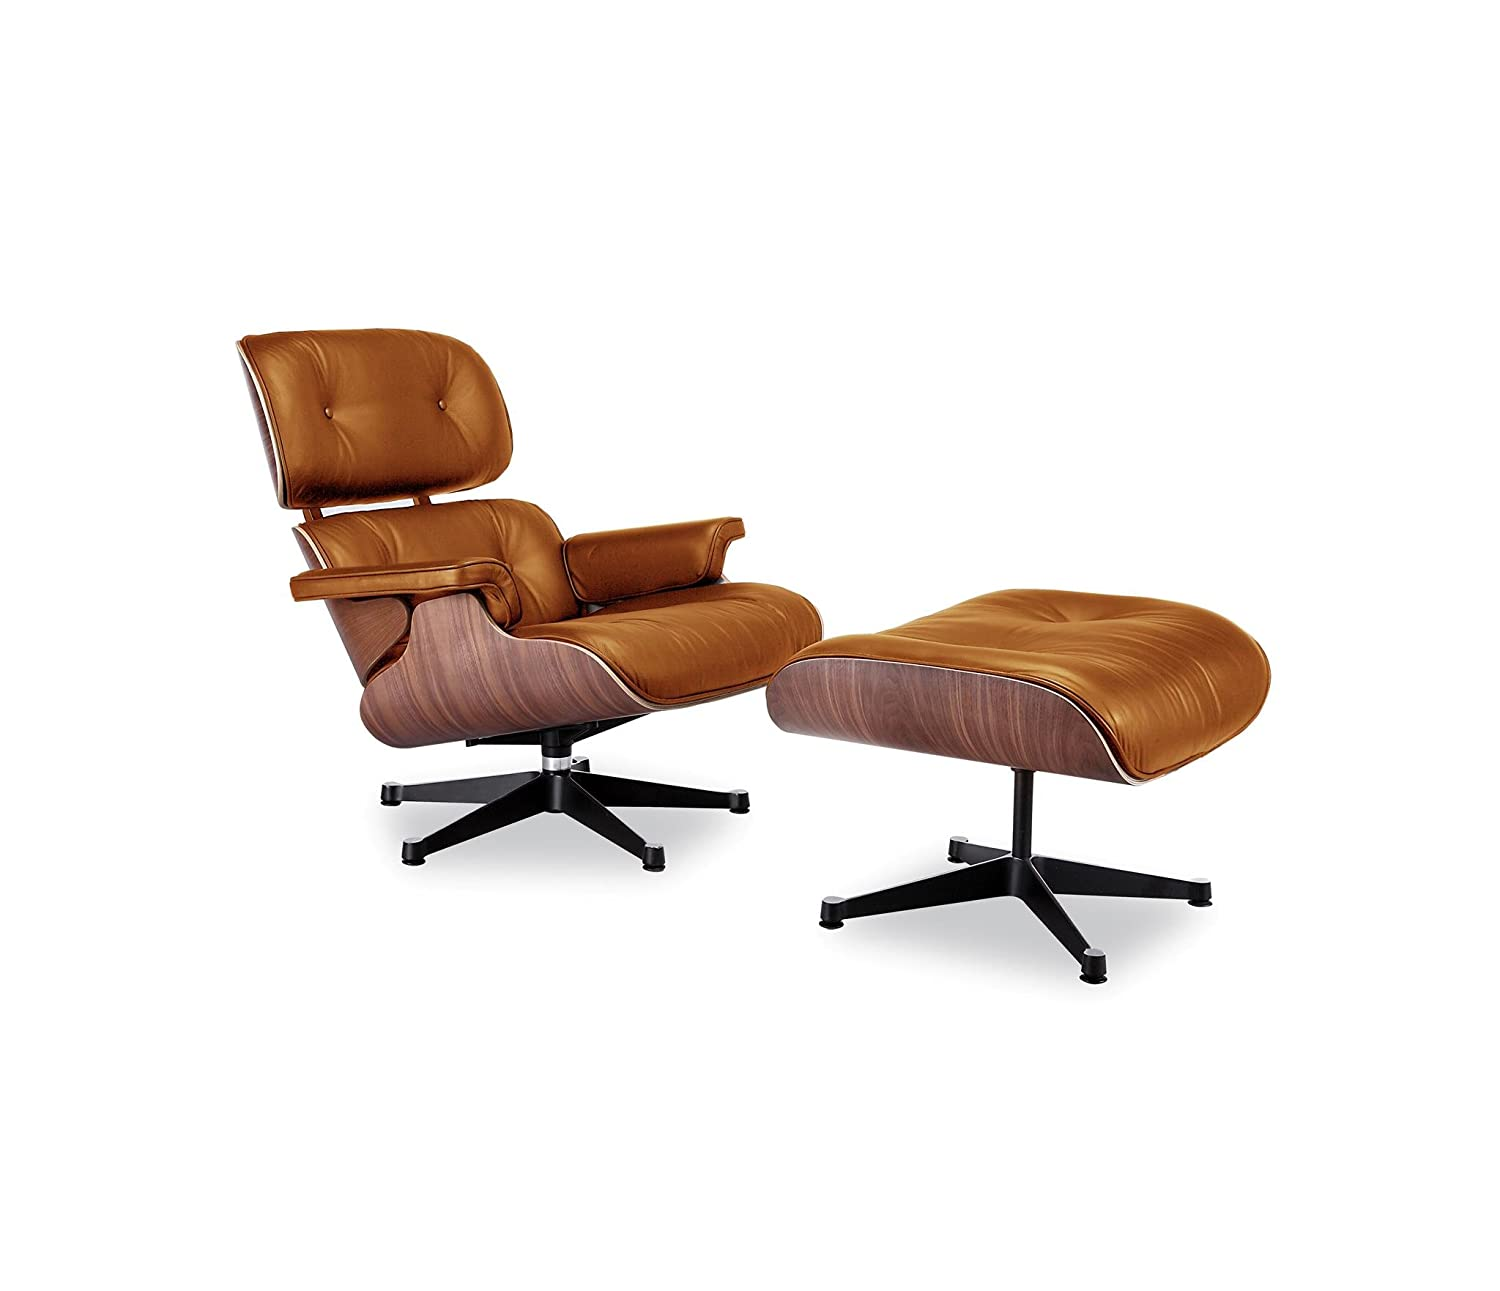 chairs lounge living within eames main and reach chair ottoman design pd